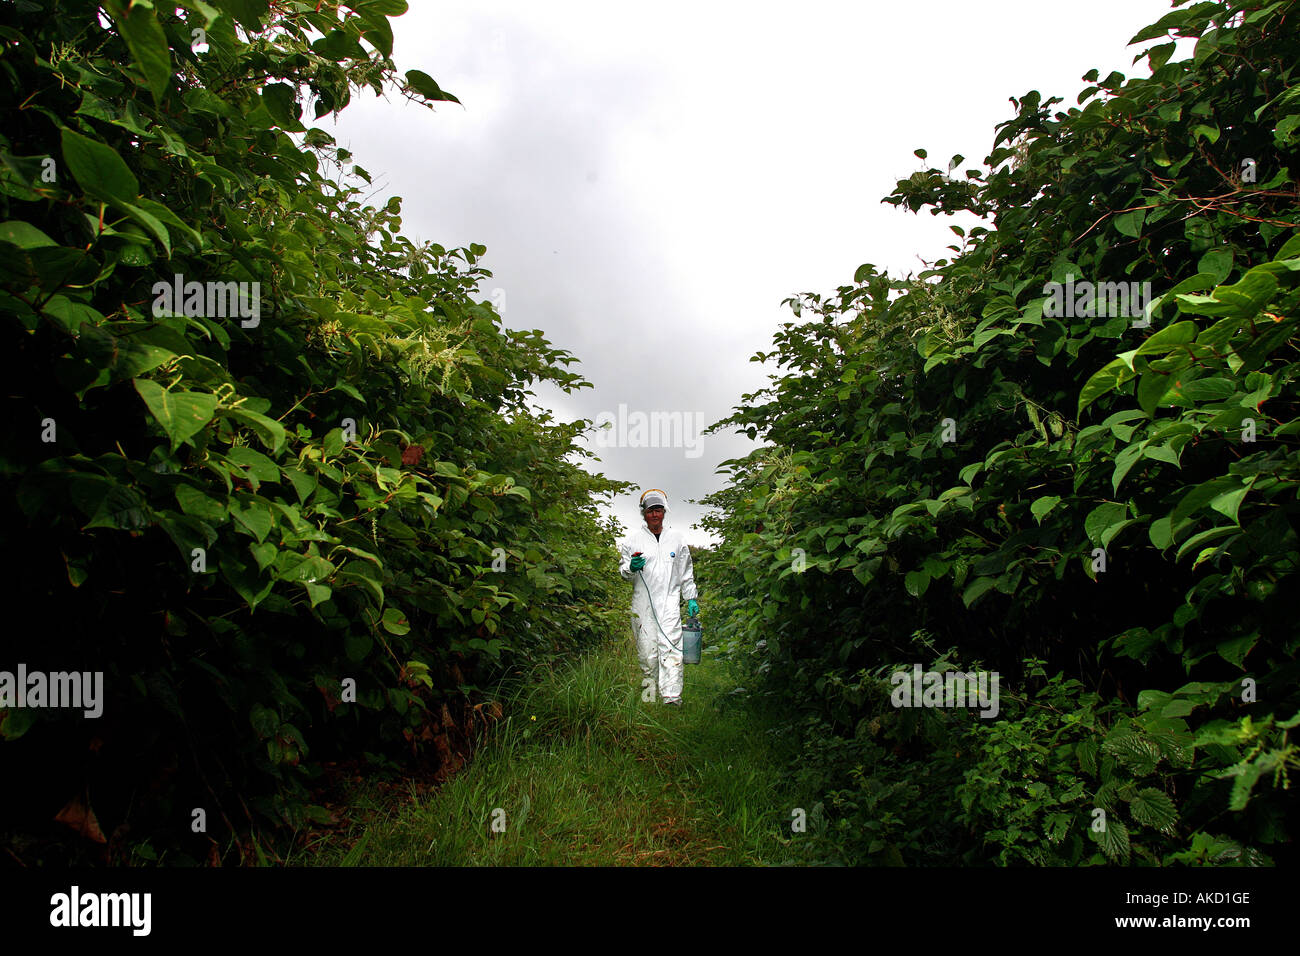 A pest eradication expert prepares to poison Japanese knotweed in Cornwall England UK Stock Photo